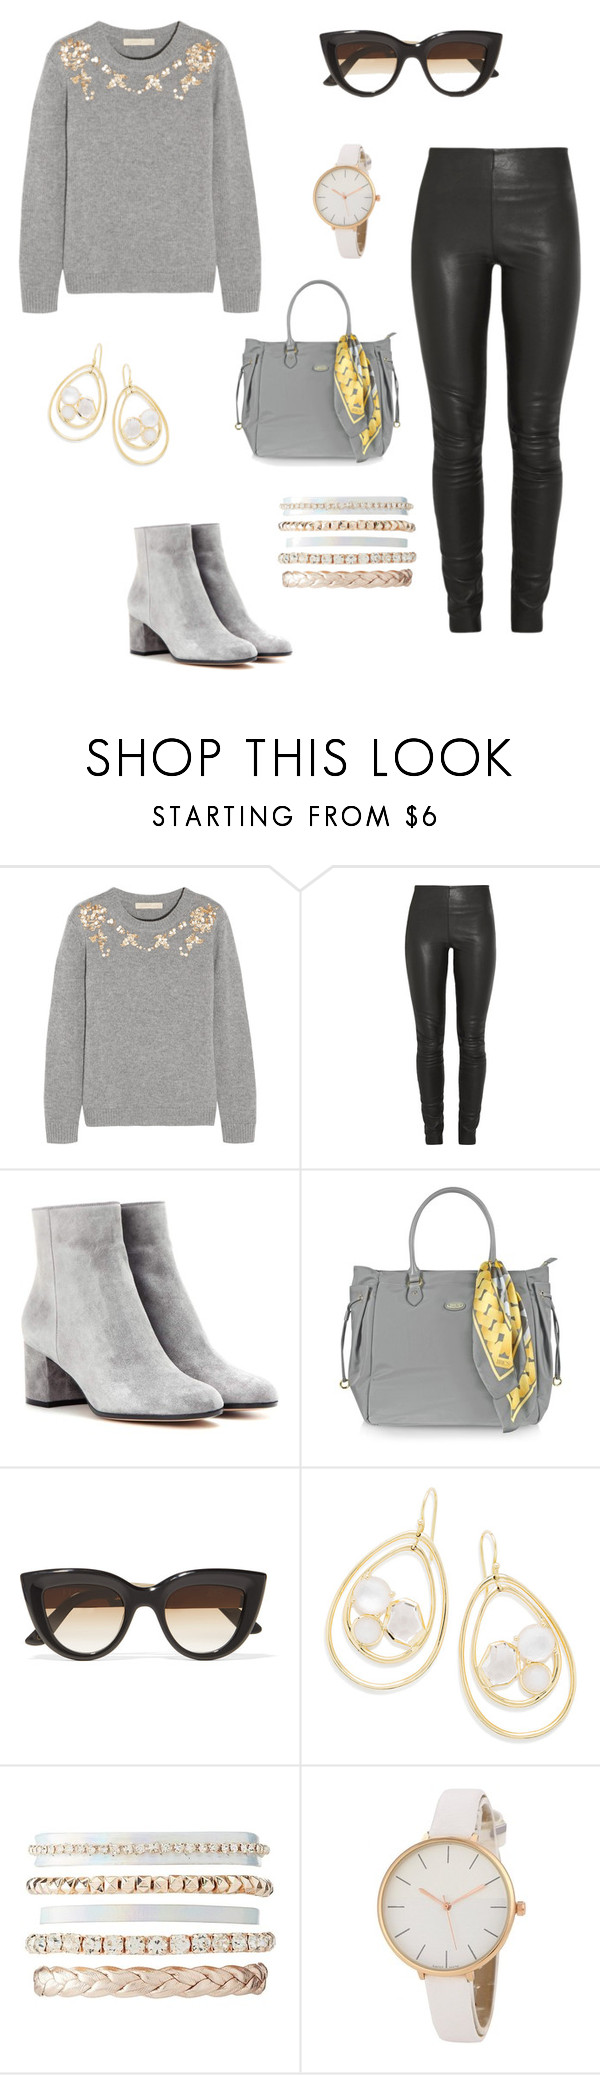 """""""Untitled #306"""" by anne-mary-c ❤ liked on Polyvore featuring Vanessa Bruno, By Malene Birger, Gianvito Rossi, Bric's, E L L E R Y, Ippolita and Charlotte Russe"""